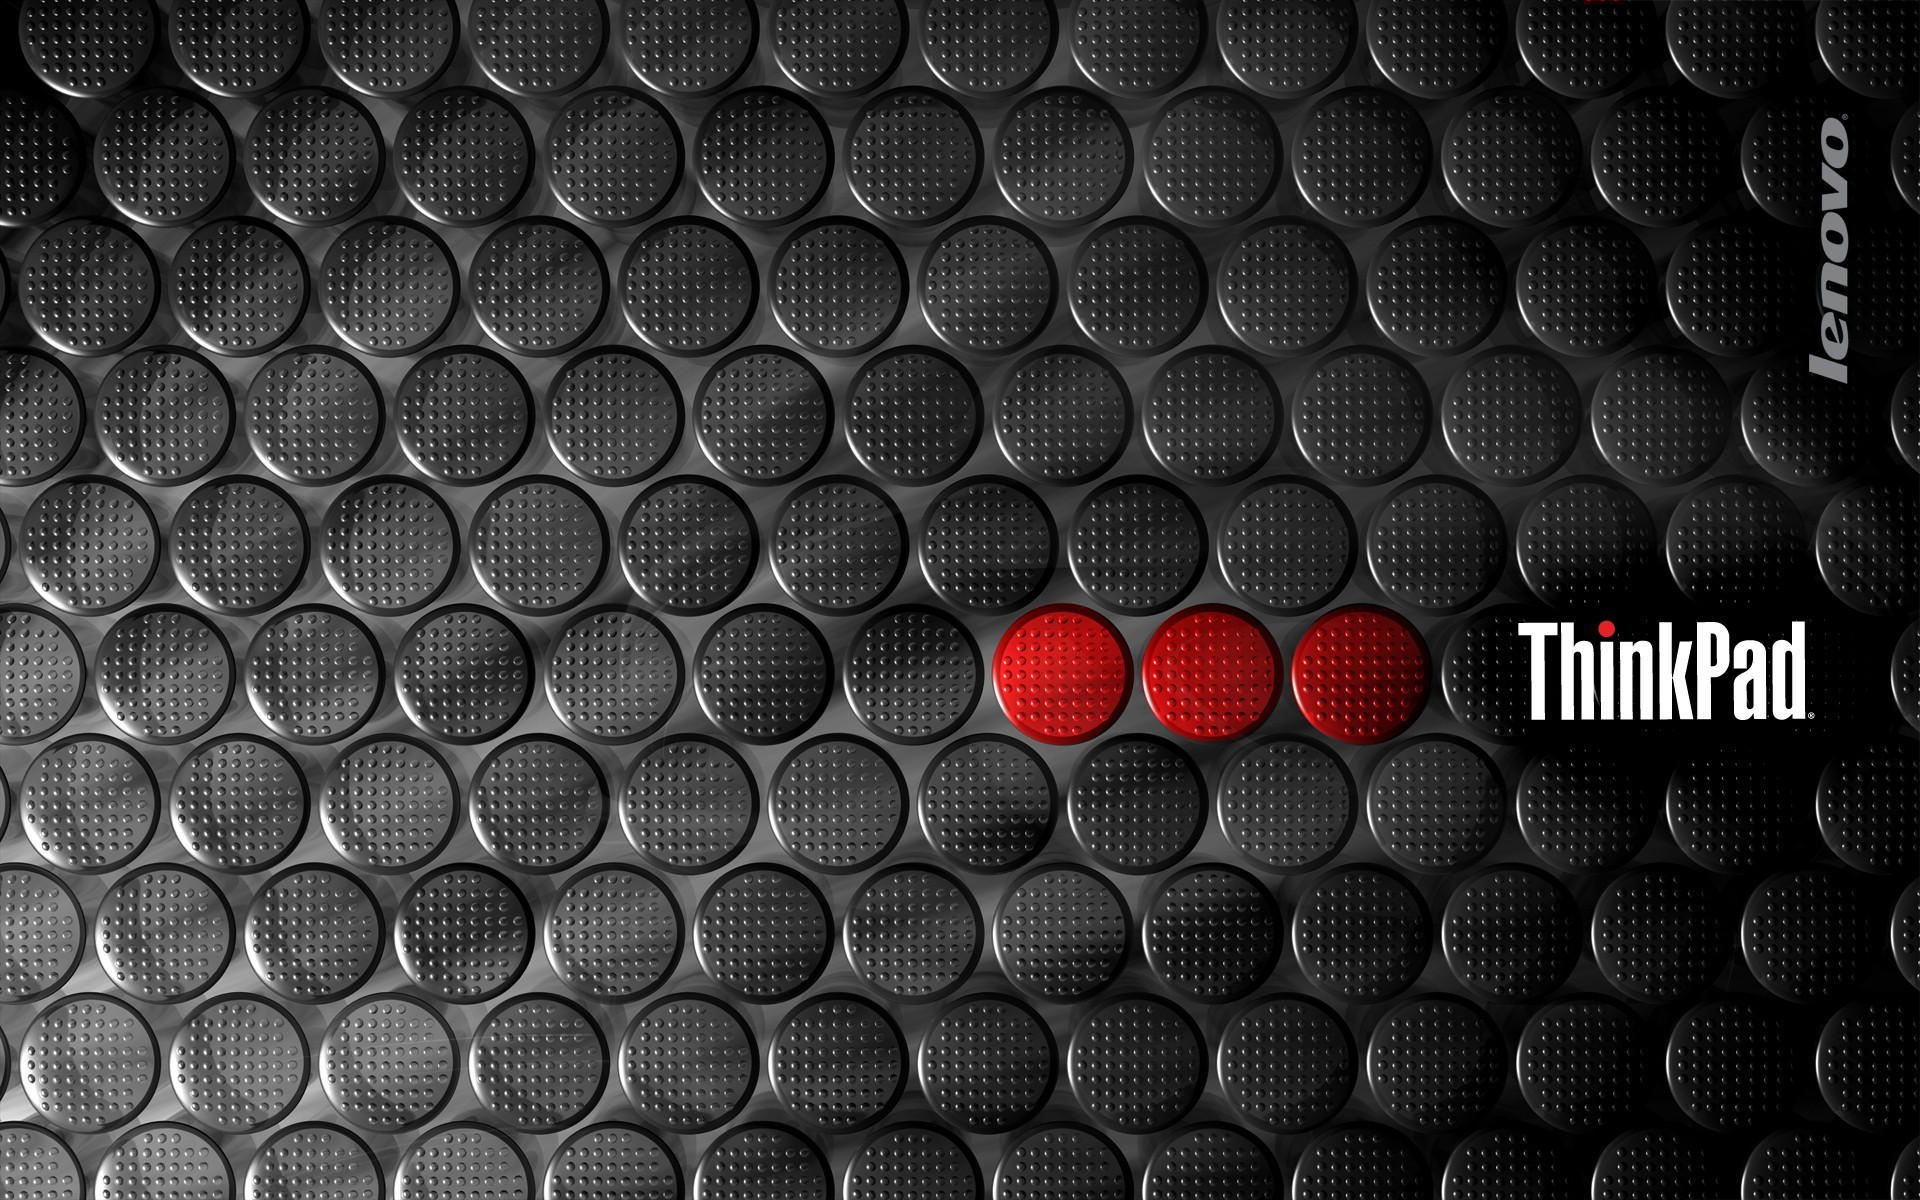 1280x800 wallpaper thinkpad - photo #32